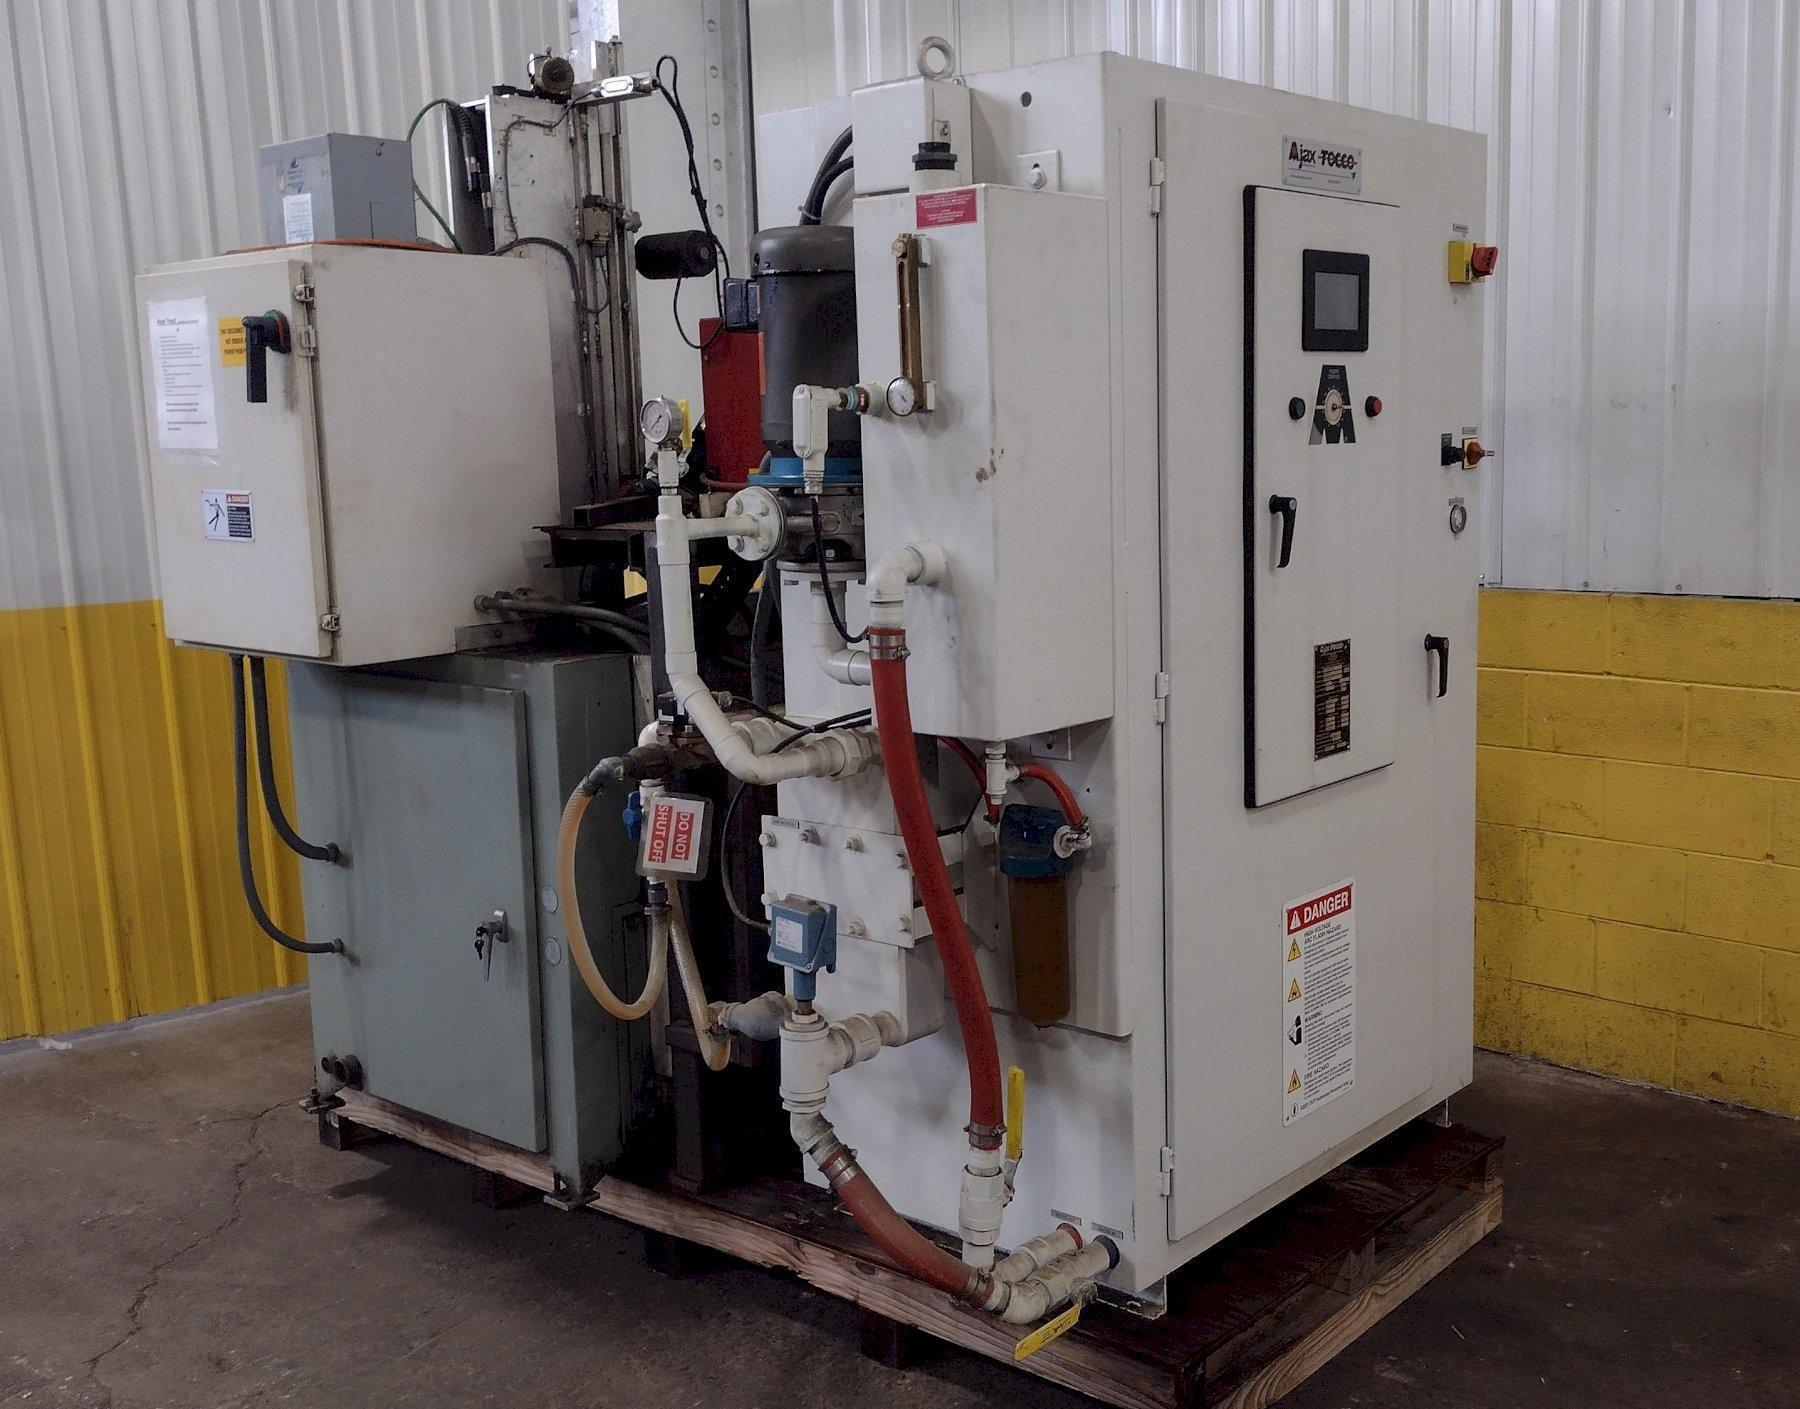 80 KW AJAX TOCCO MODEL #PACER RF SOLID STATE INDUCTION HEATING SOURCE, SCANNER & QUENCH, NEW 2015. STOCK # 0636021